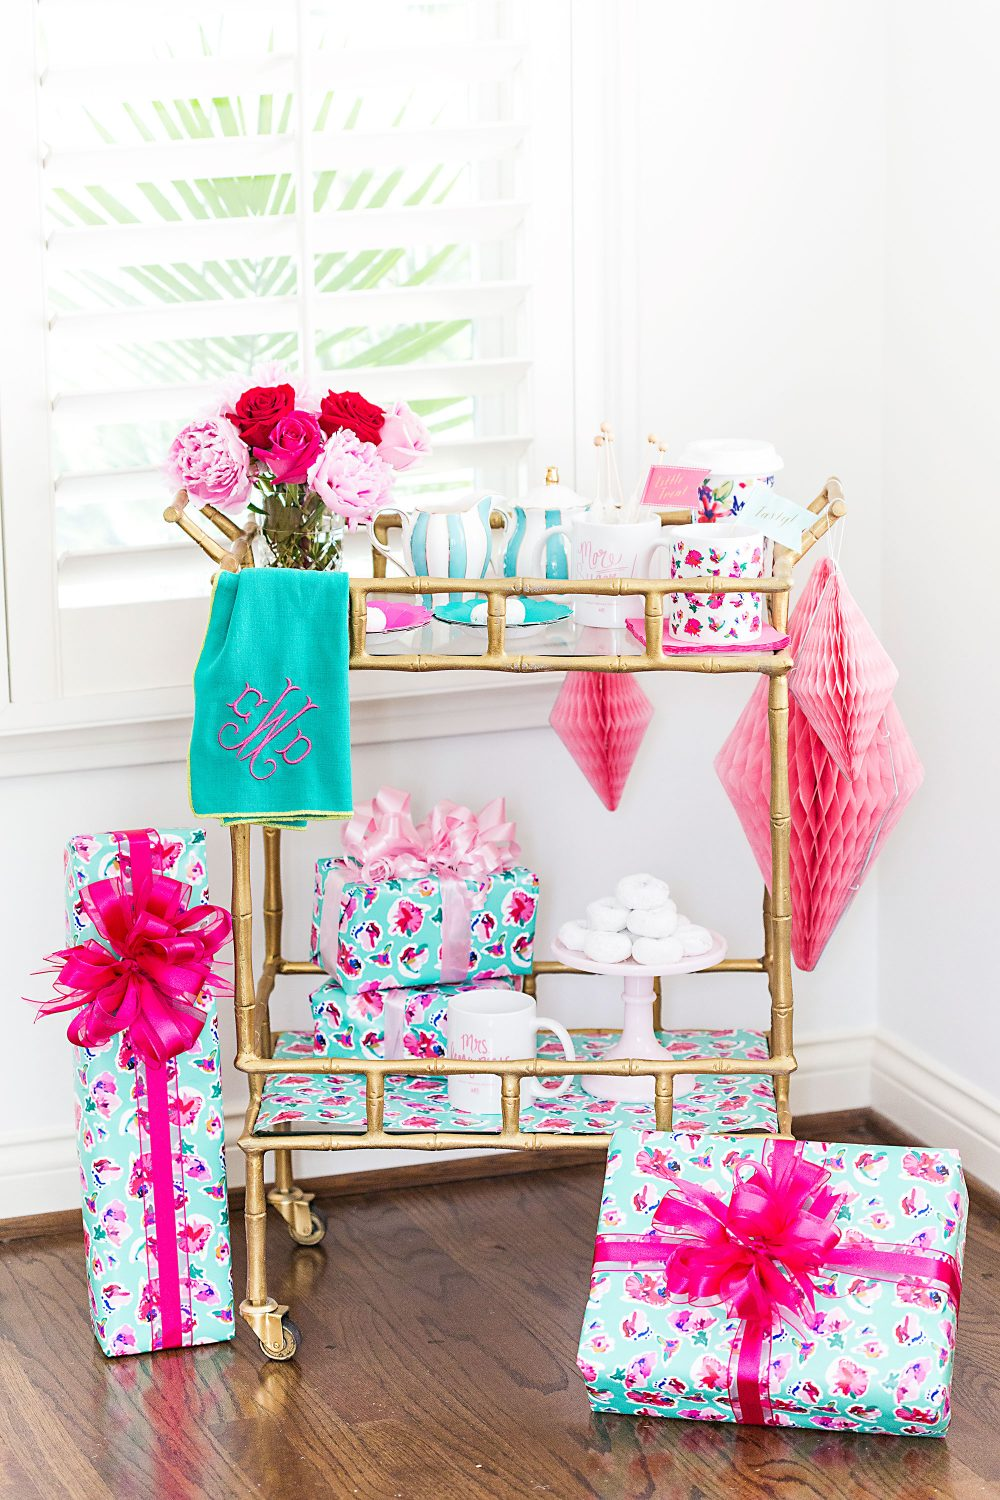 Pretty Party Cart by Pizzazzerie for ABD